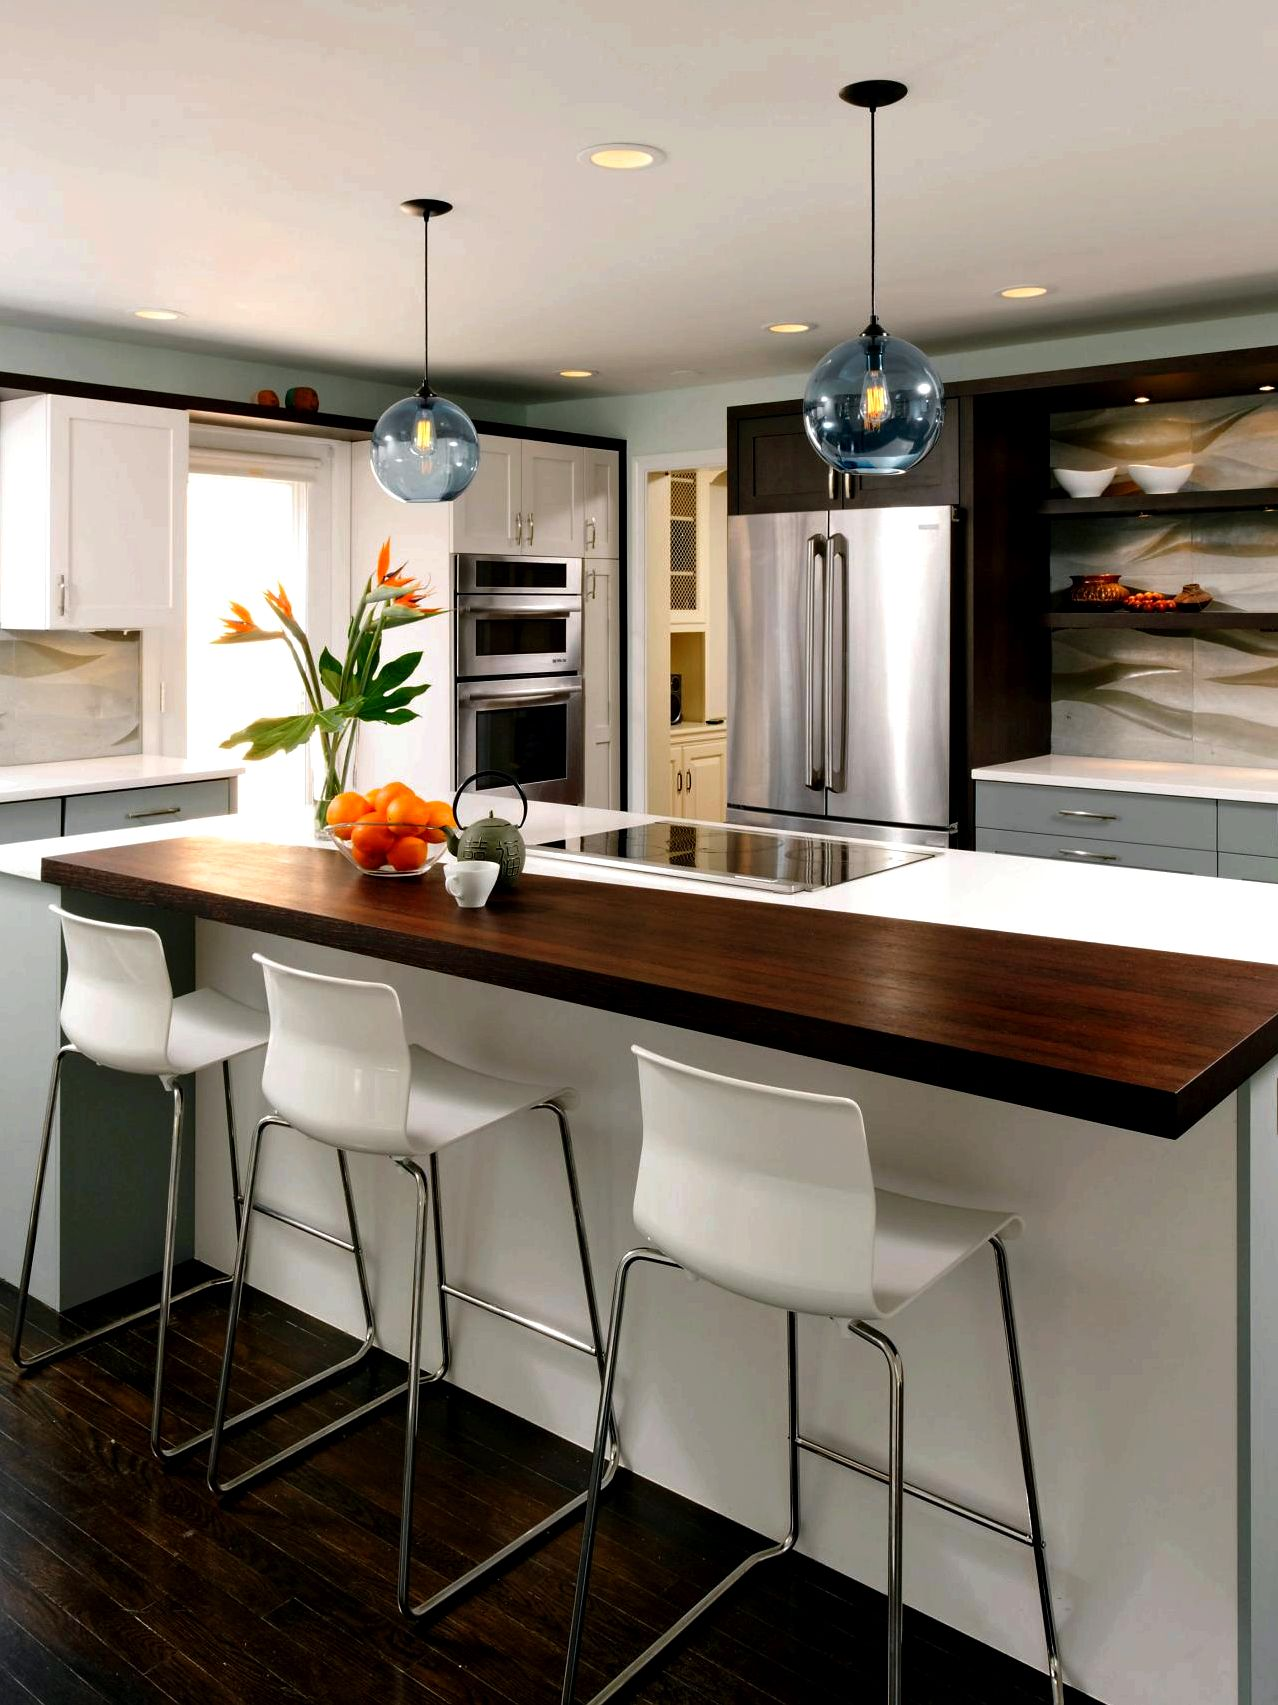 6 best countertop materials for your kitchen area counters edge grain, finish